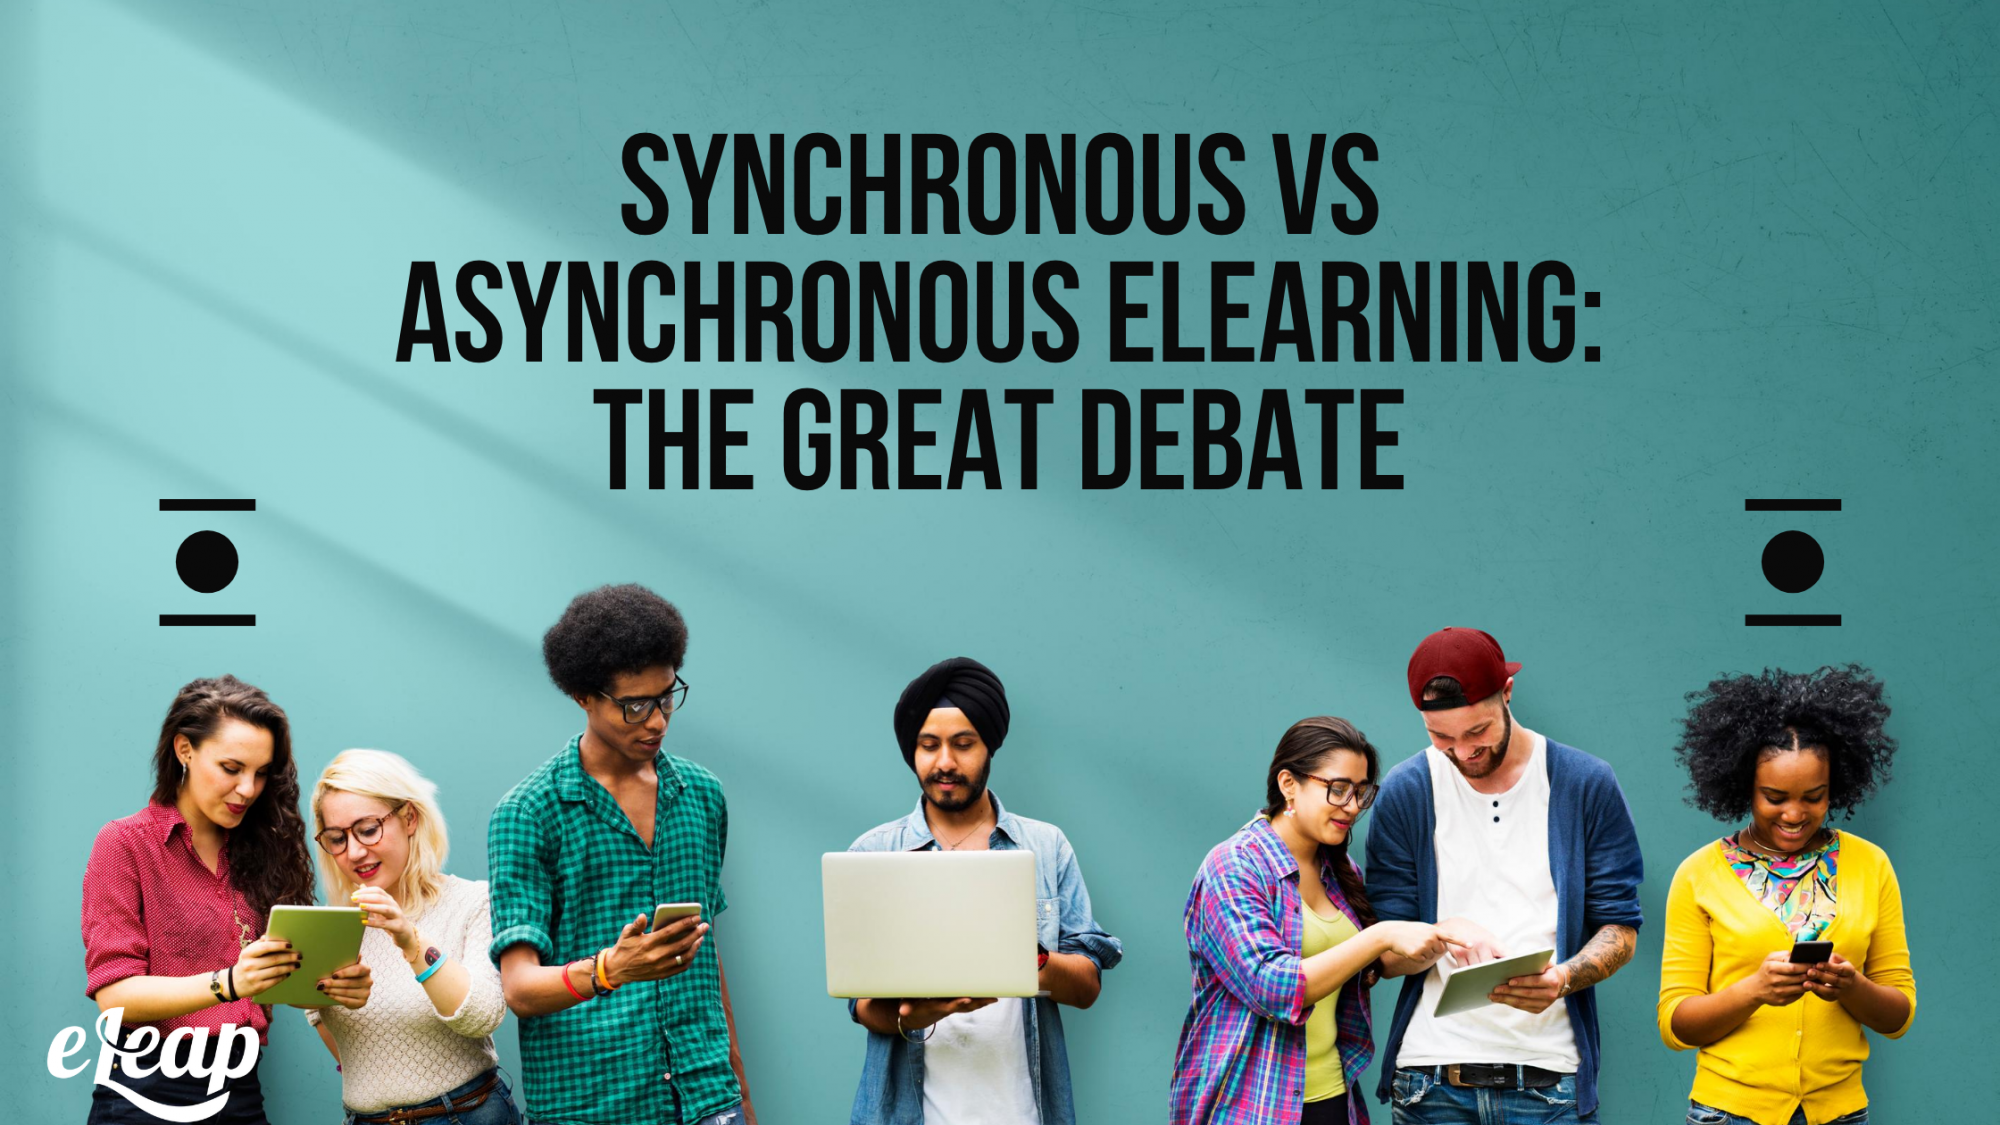 Synchronous vs Asynchronous eLearning The Great Debate